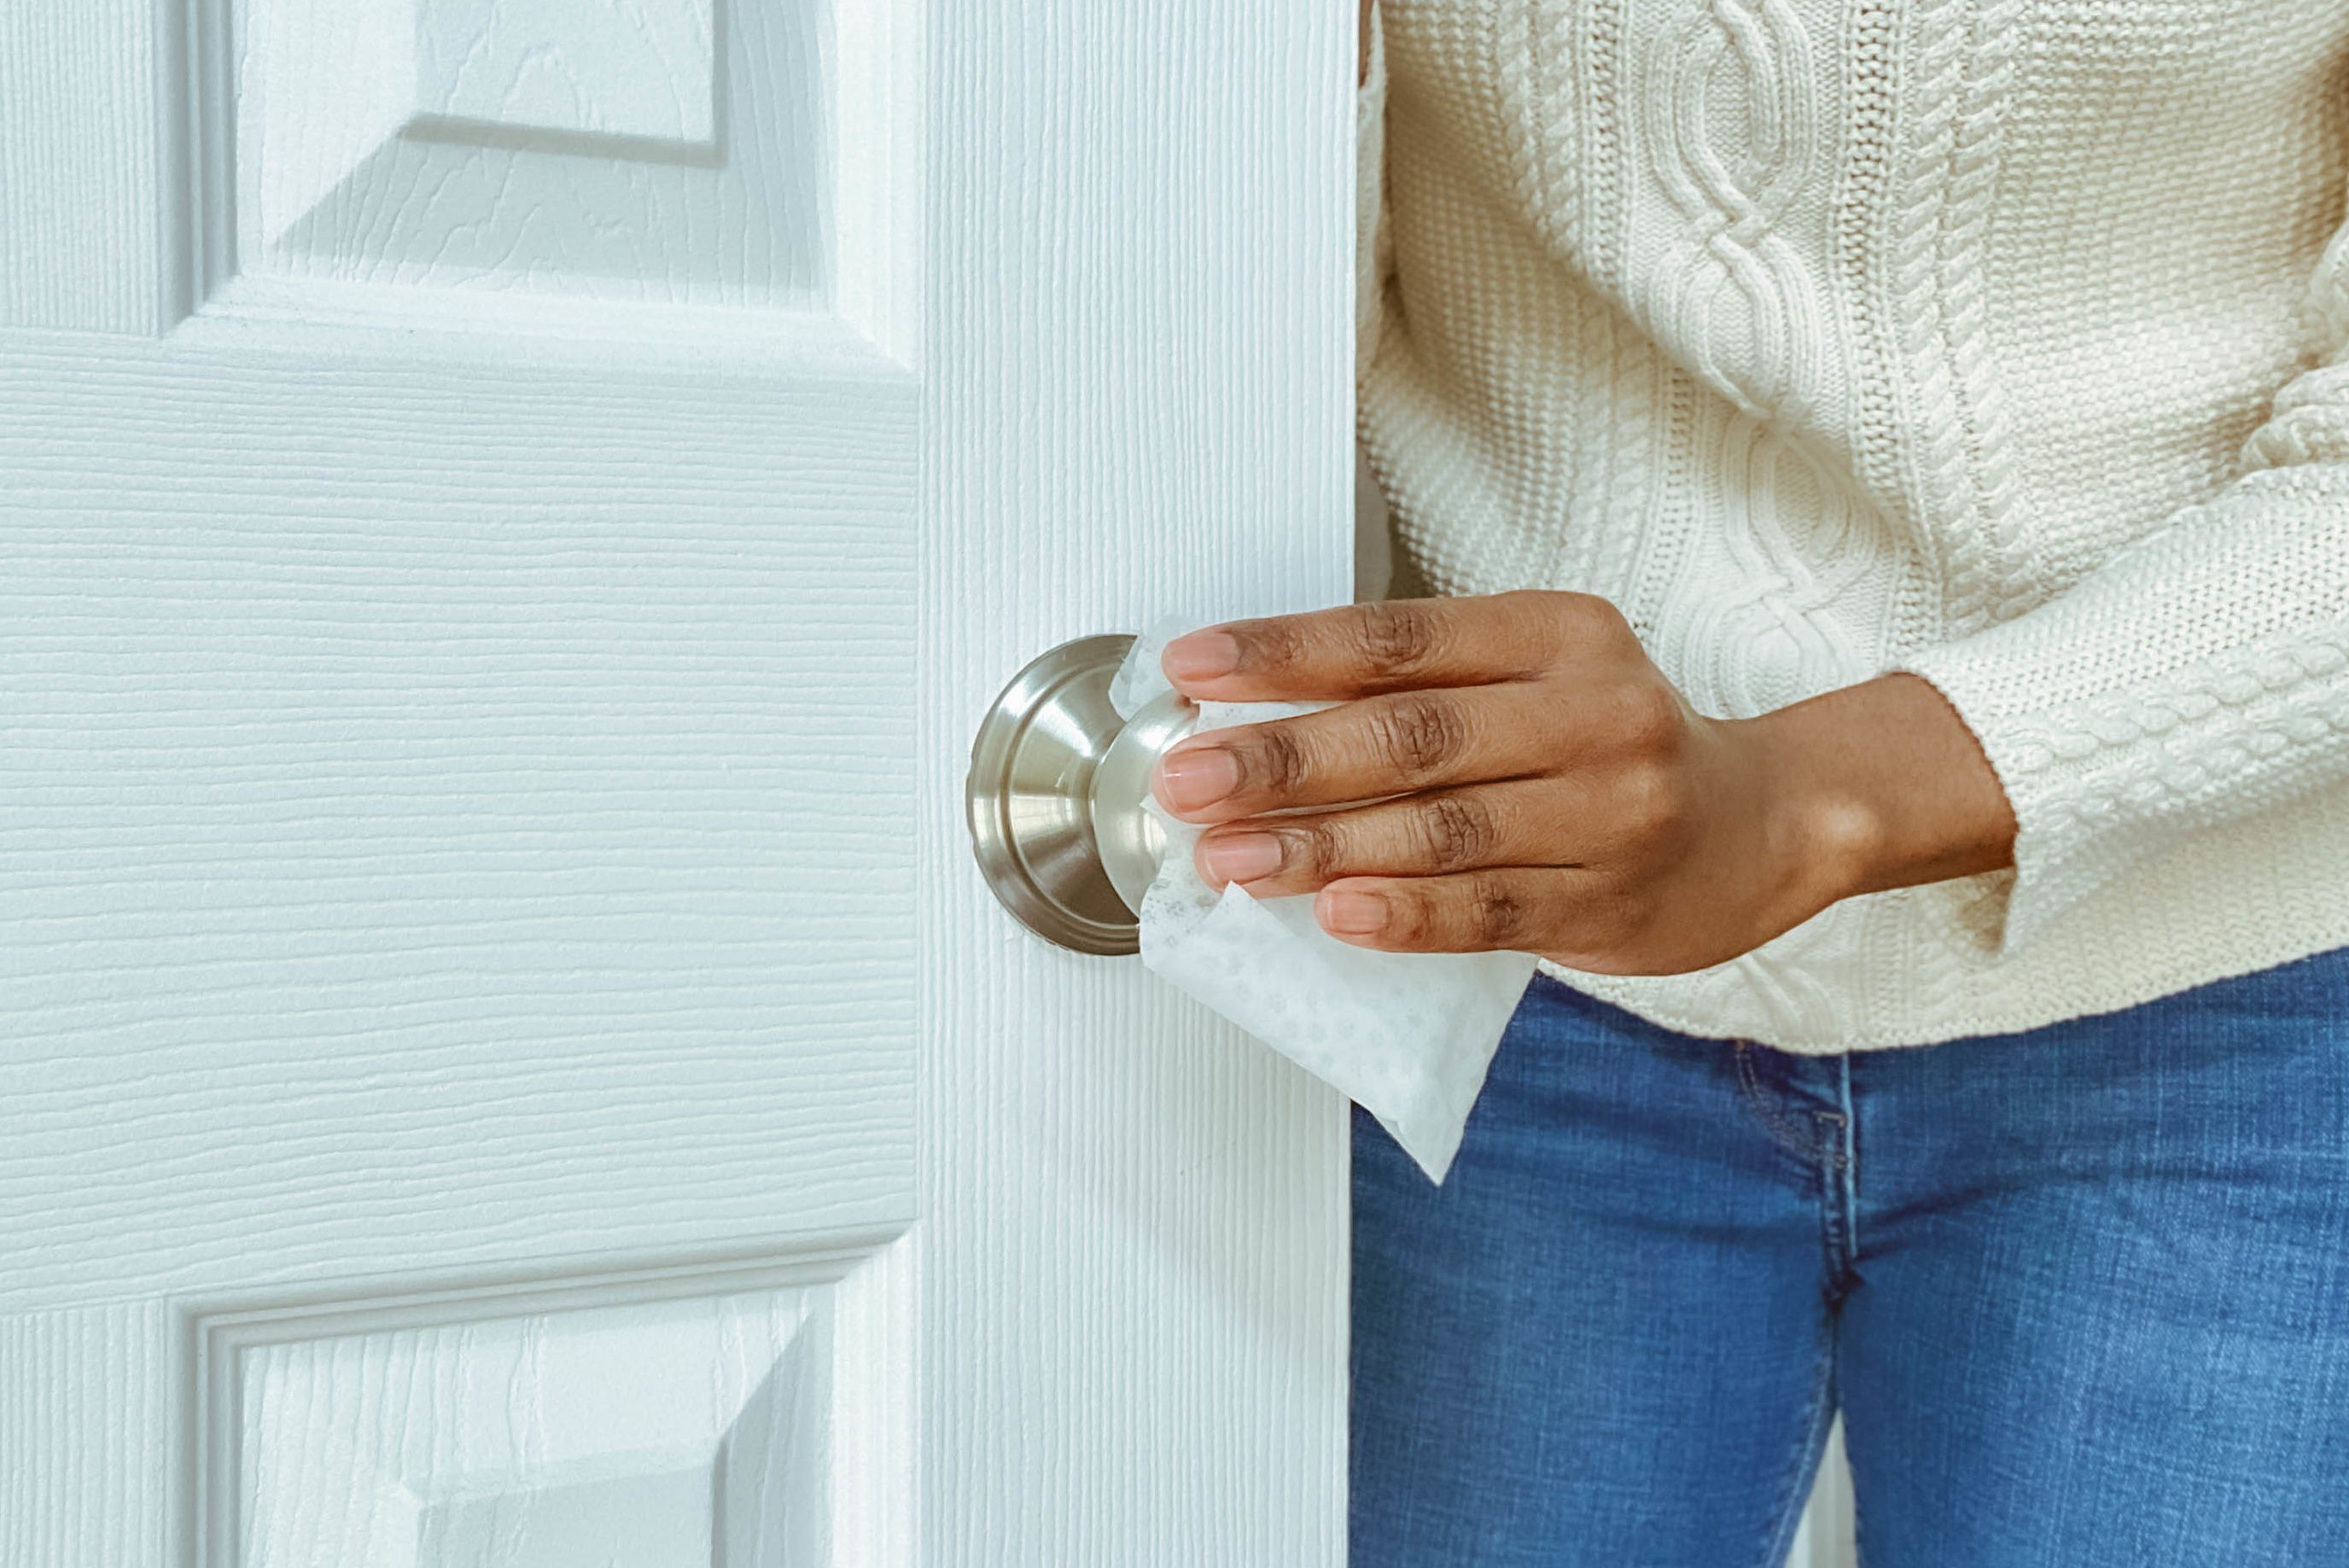 Woman Cleans Interior Doorknob Using Disinfectant Wipe